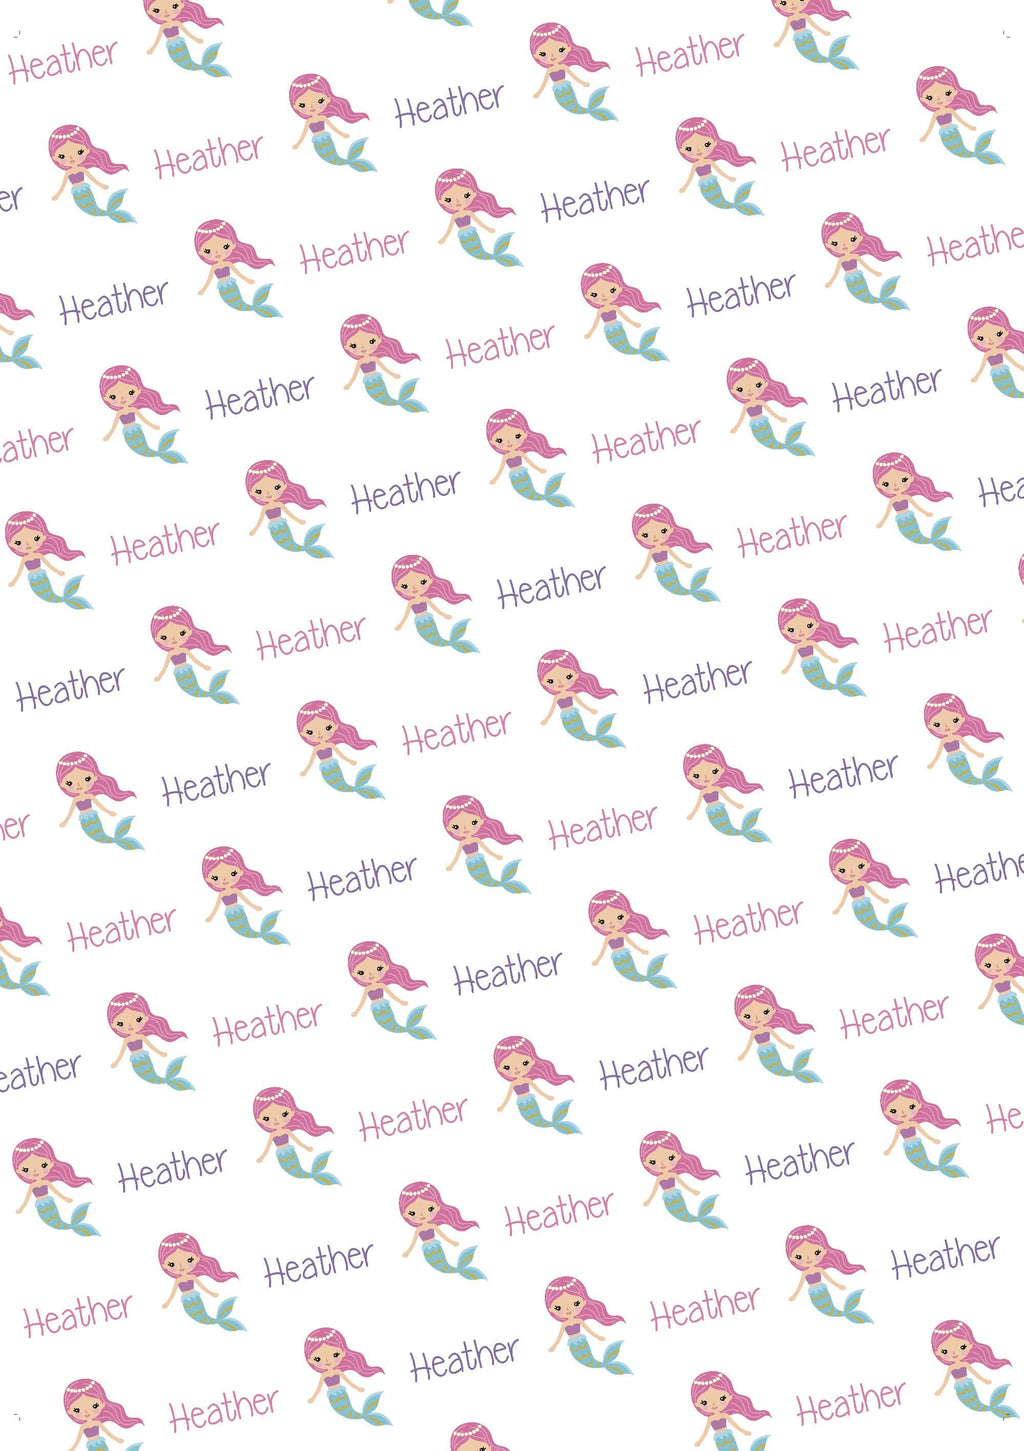 Mermaid Personalized Tissue Paper